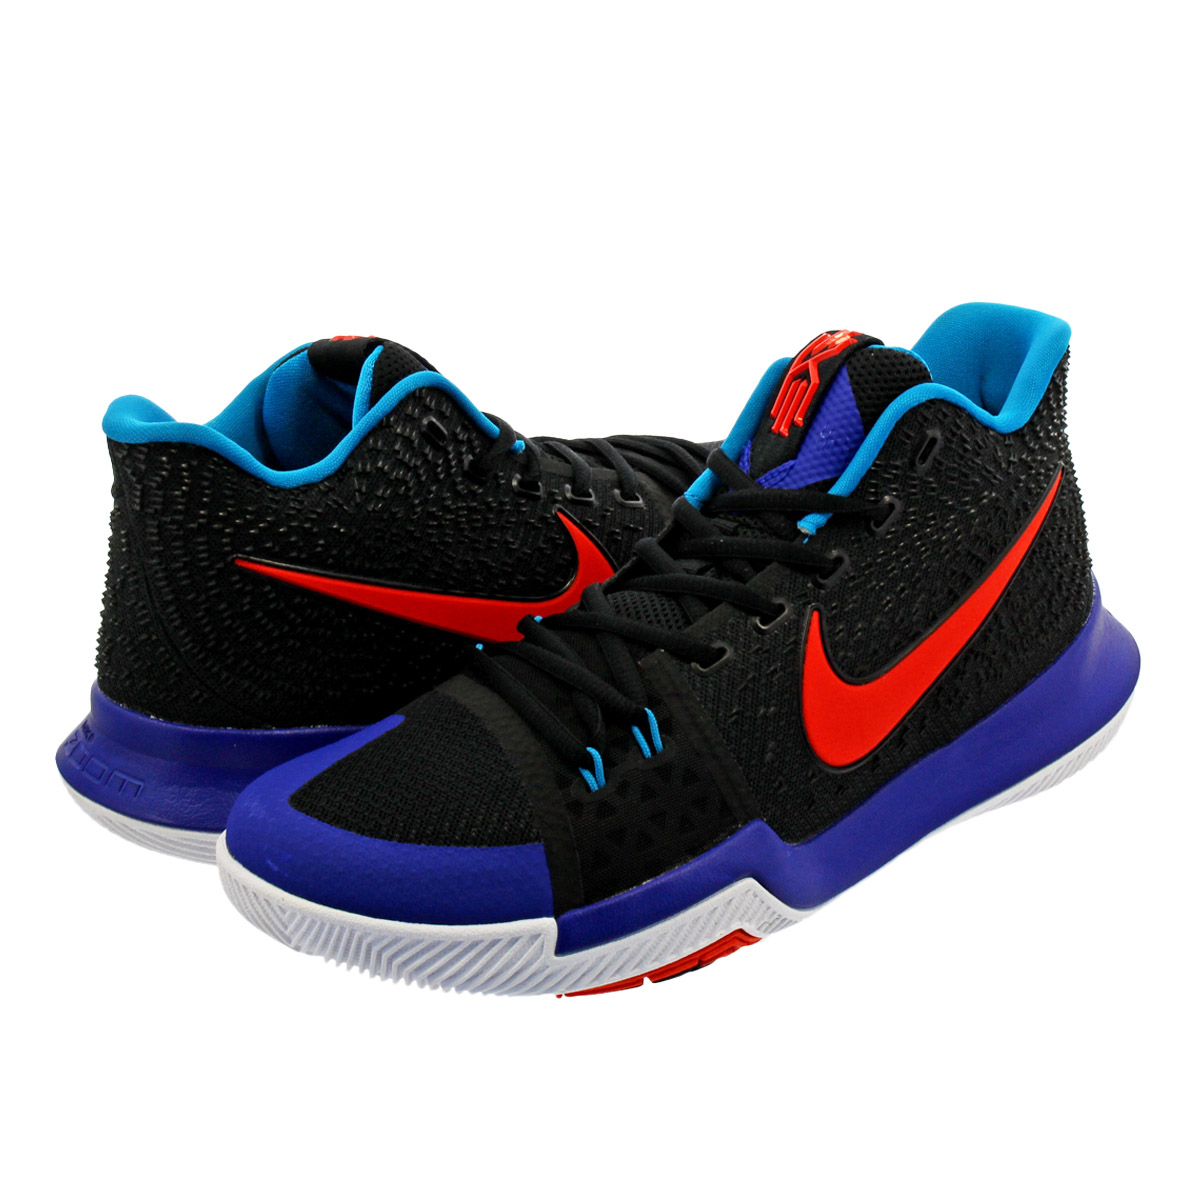 NIKE KYRIE 3 ナイキ カイリー 3 LACK/TEAM ORANGE/CONCORD/NEO TURQUOISE 852395-007